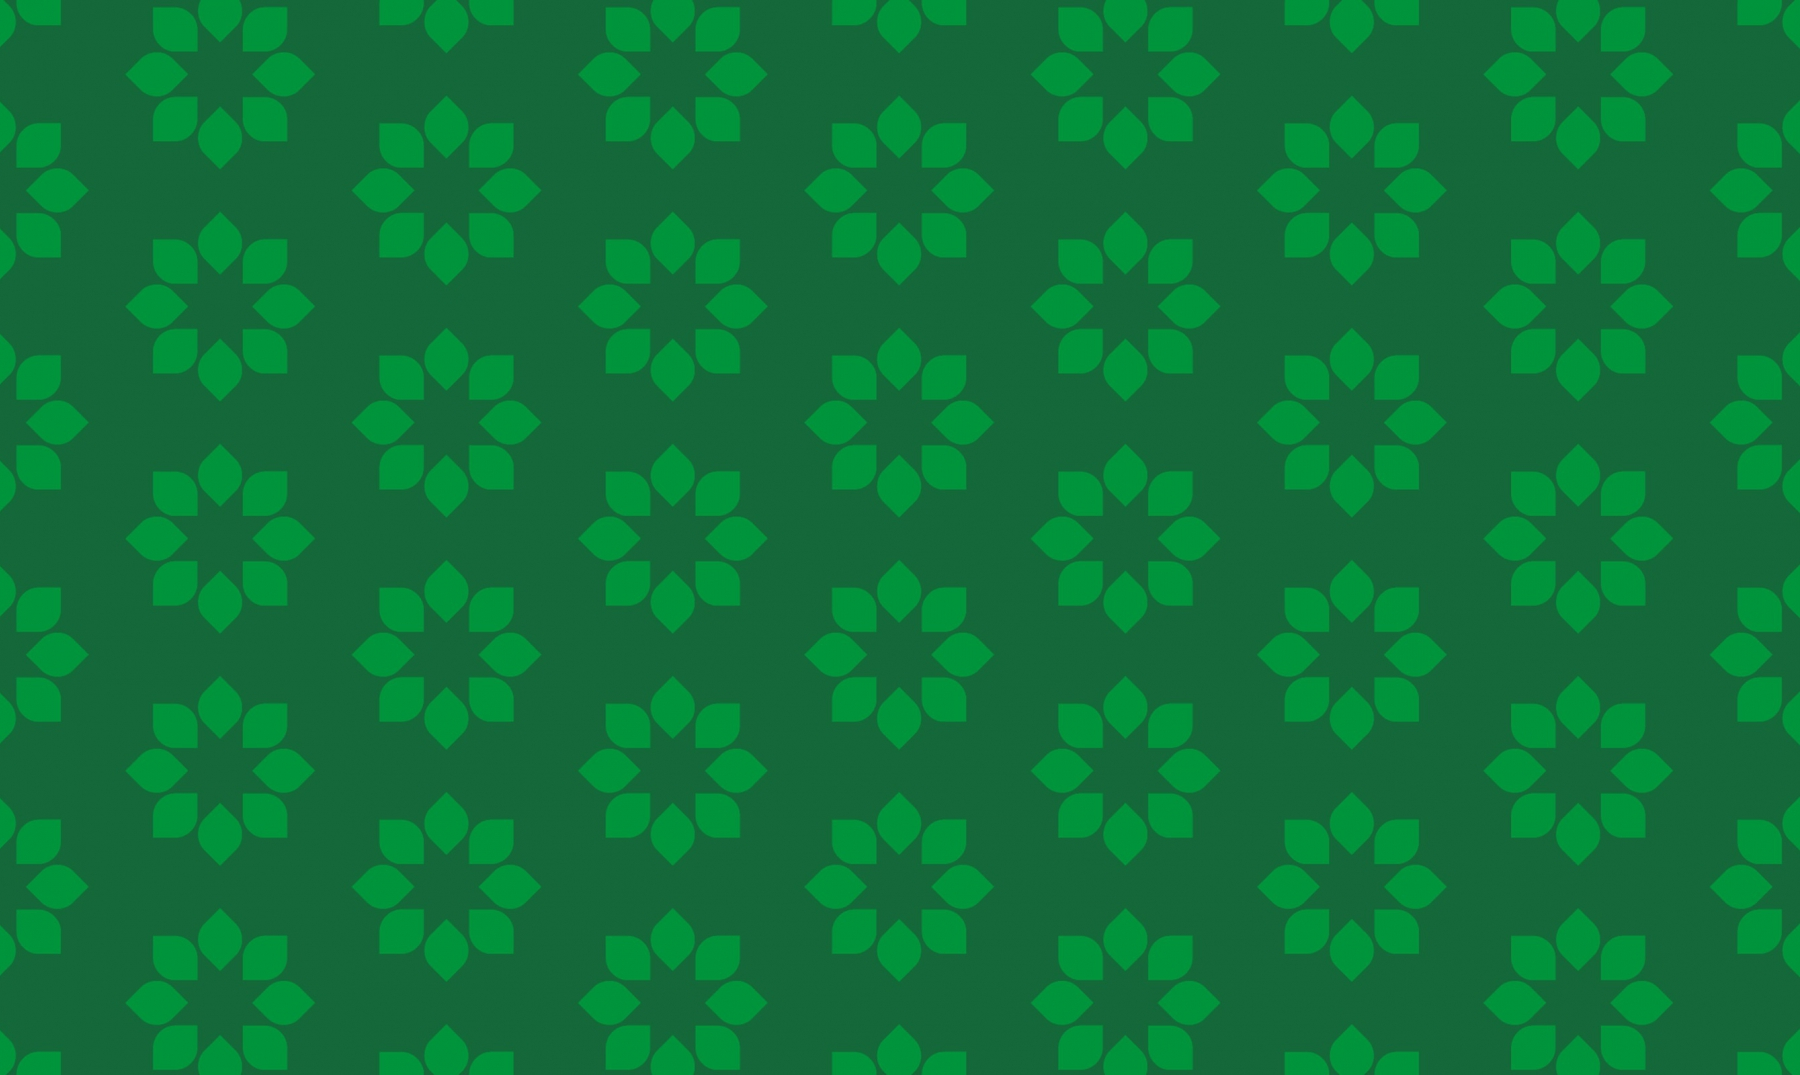 12_Easter_Pattern_2680x1600